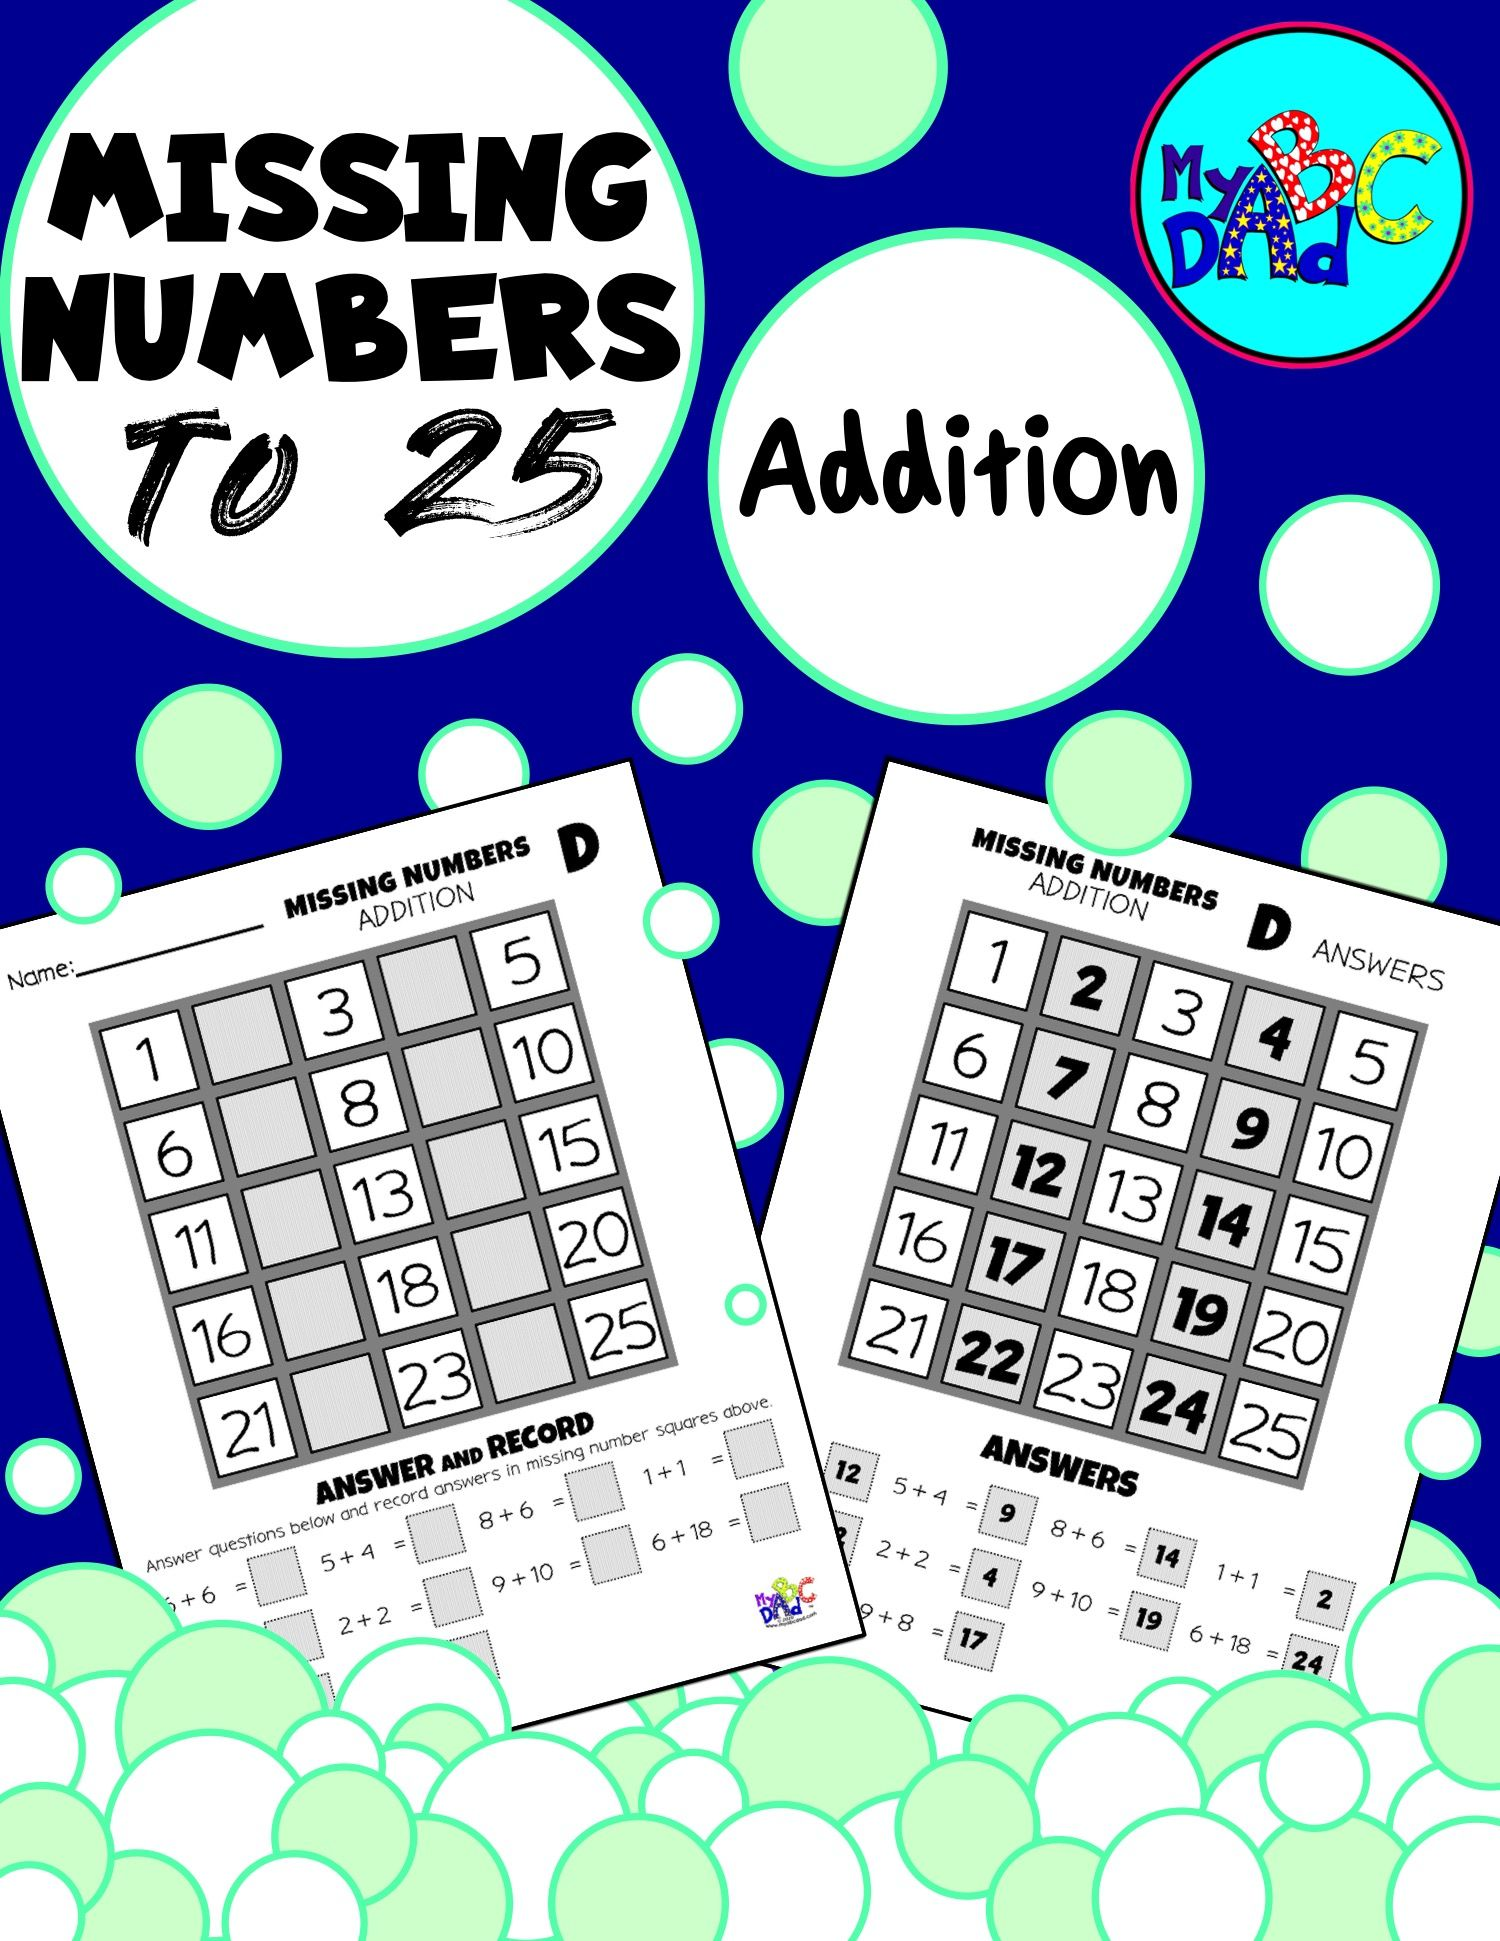 Missing Numbers To 25 Addition Activities In